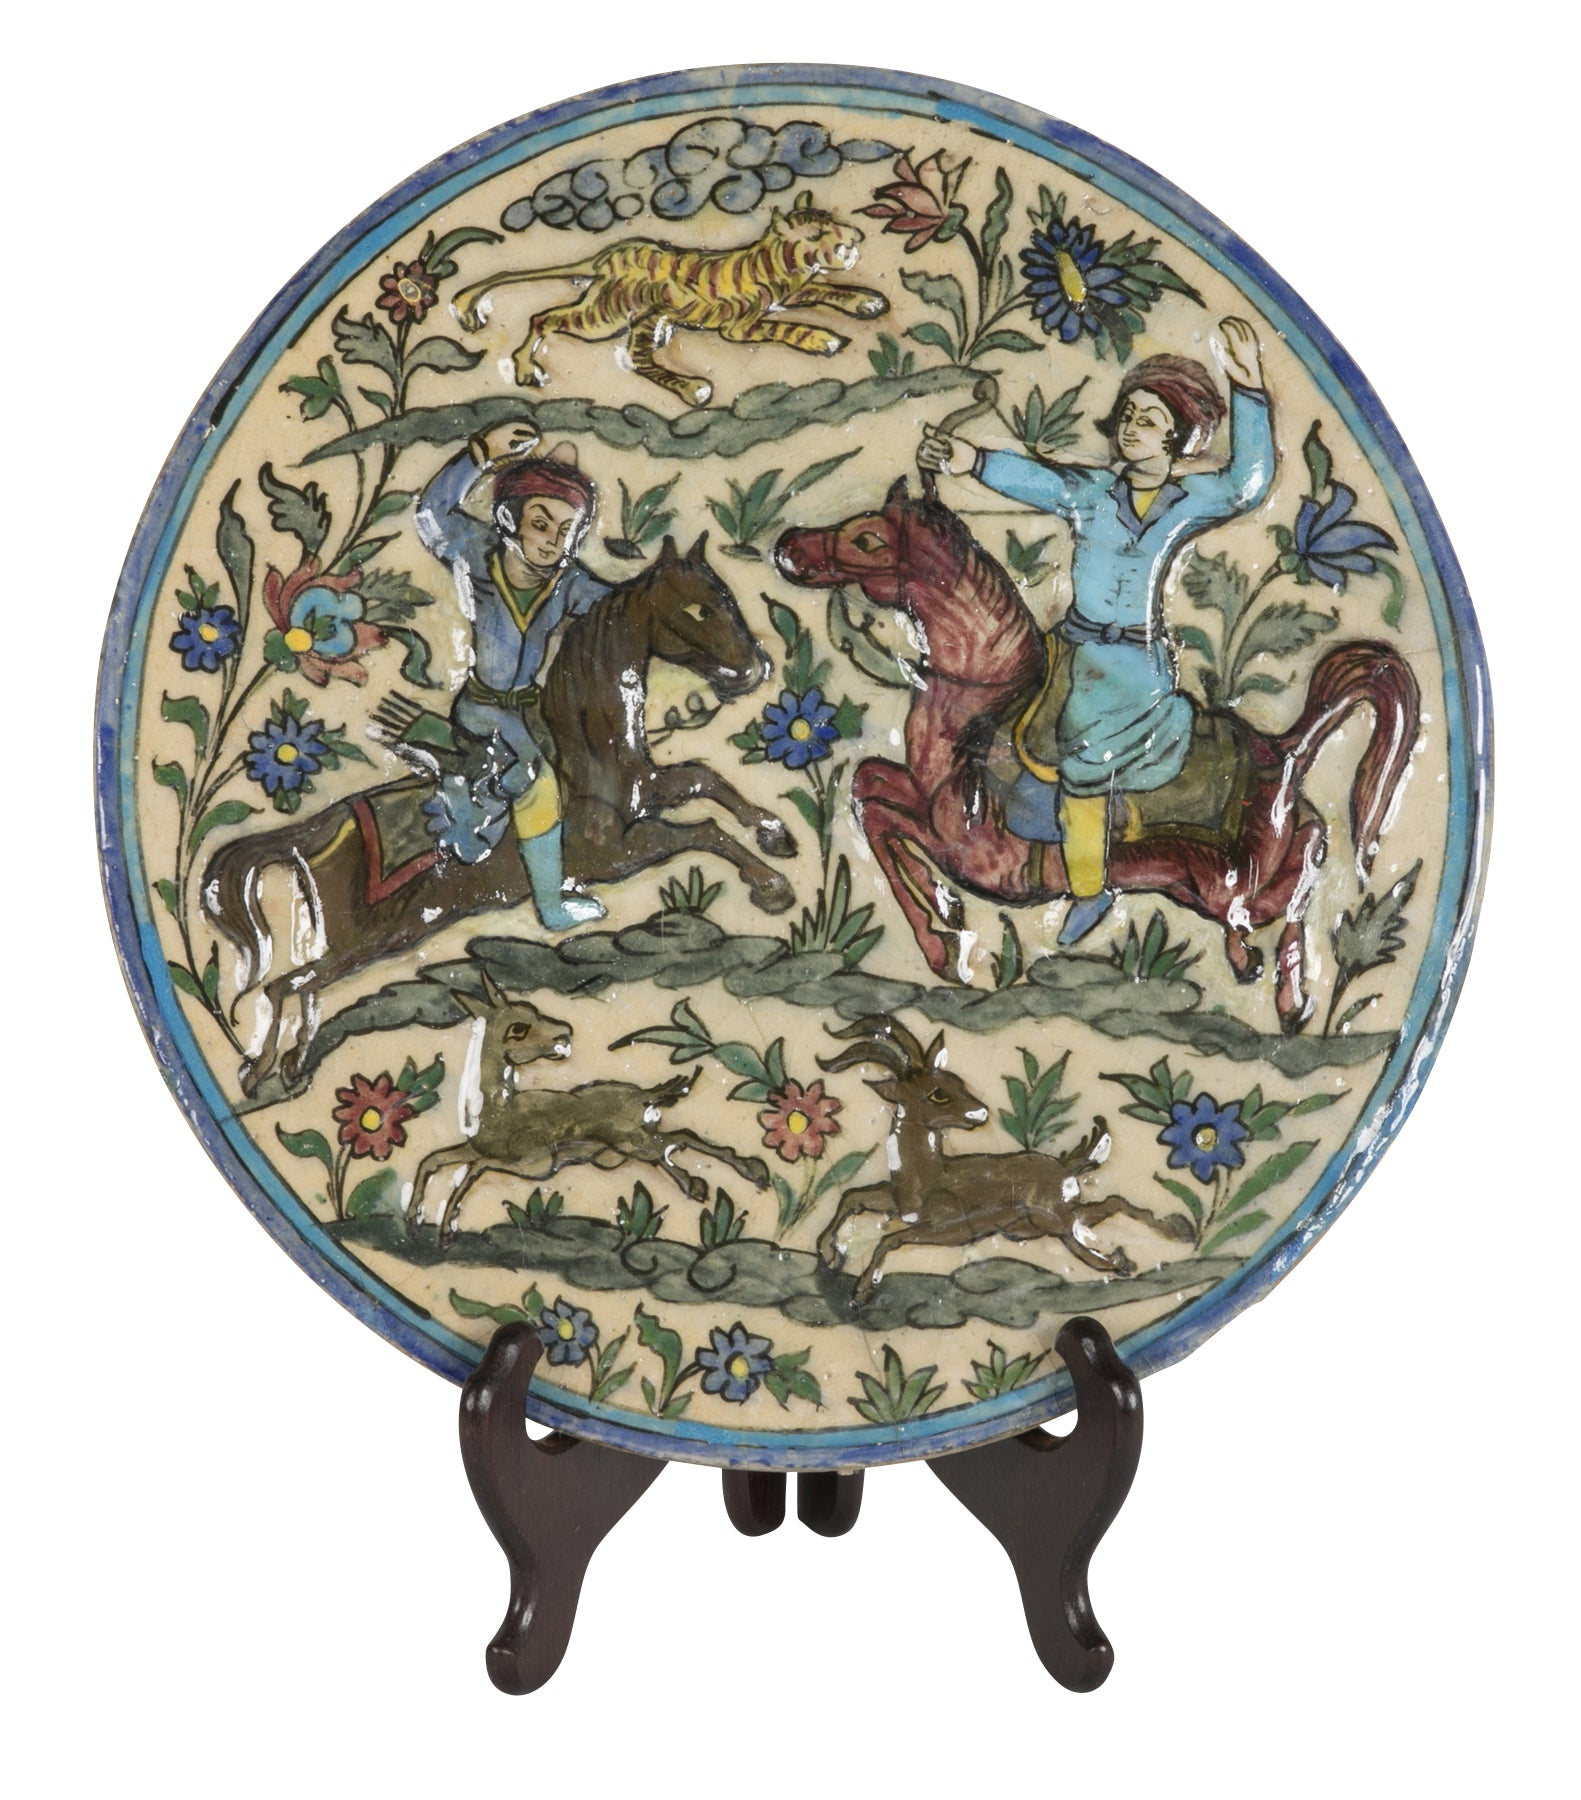 Glazed Persian Ceramic Rondel with Archers on Horseback